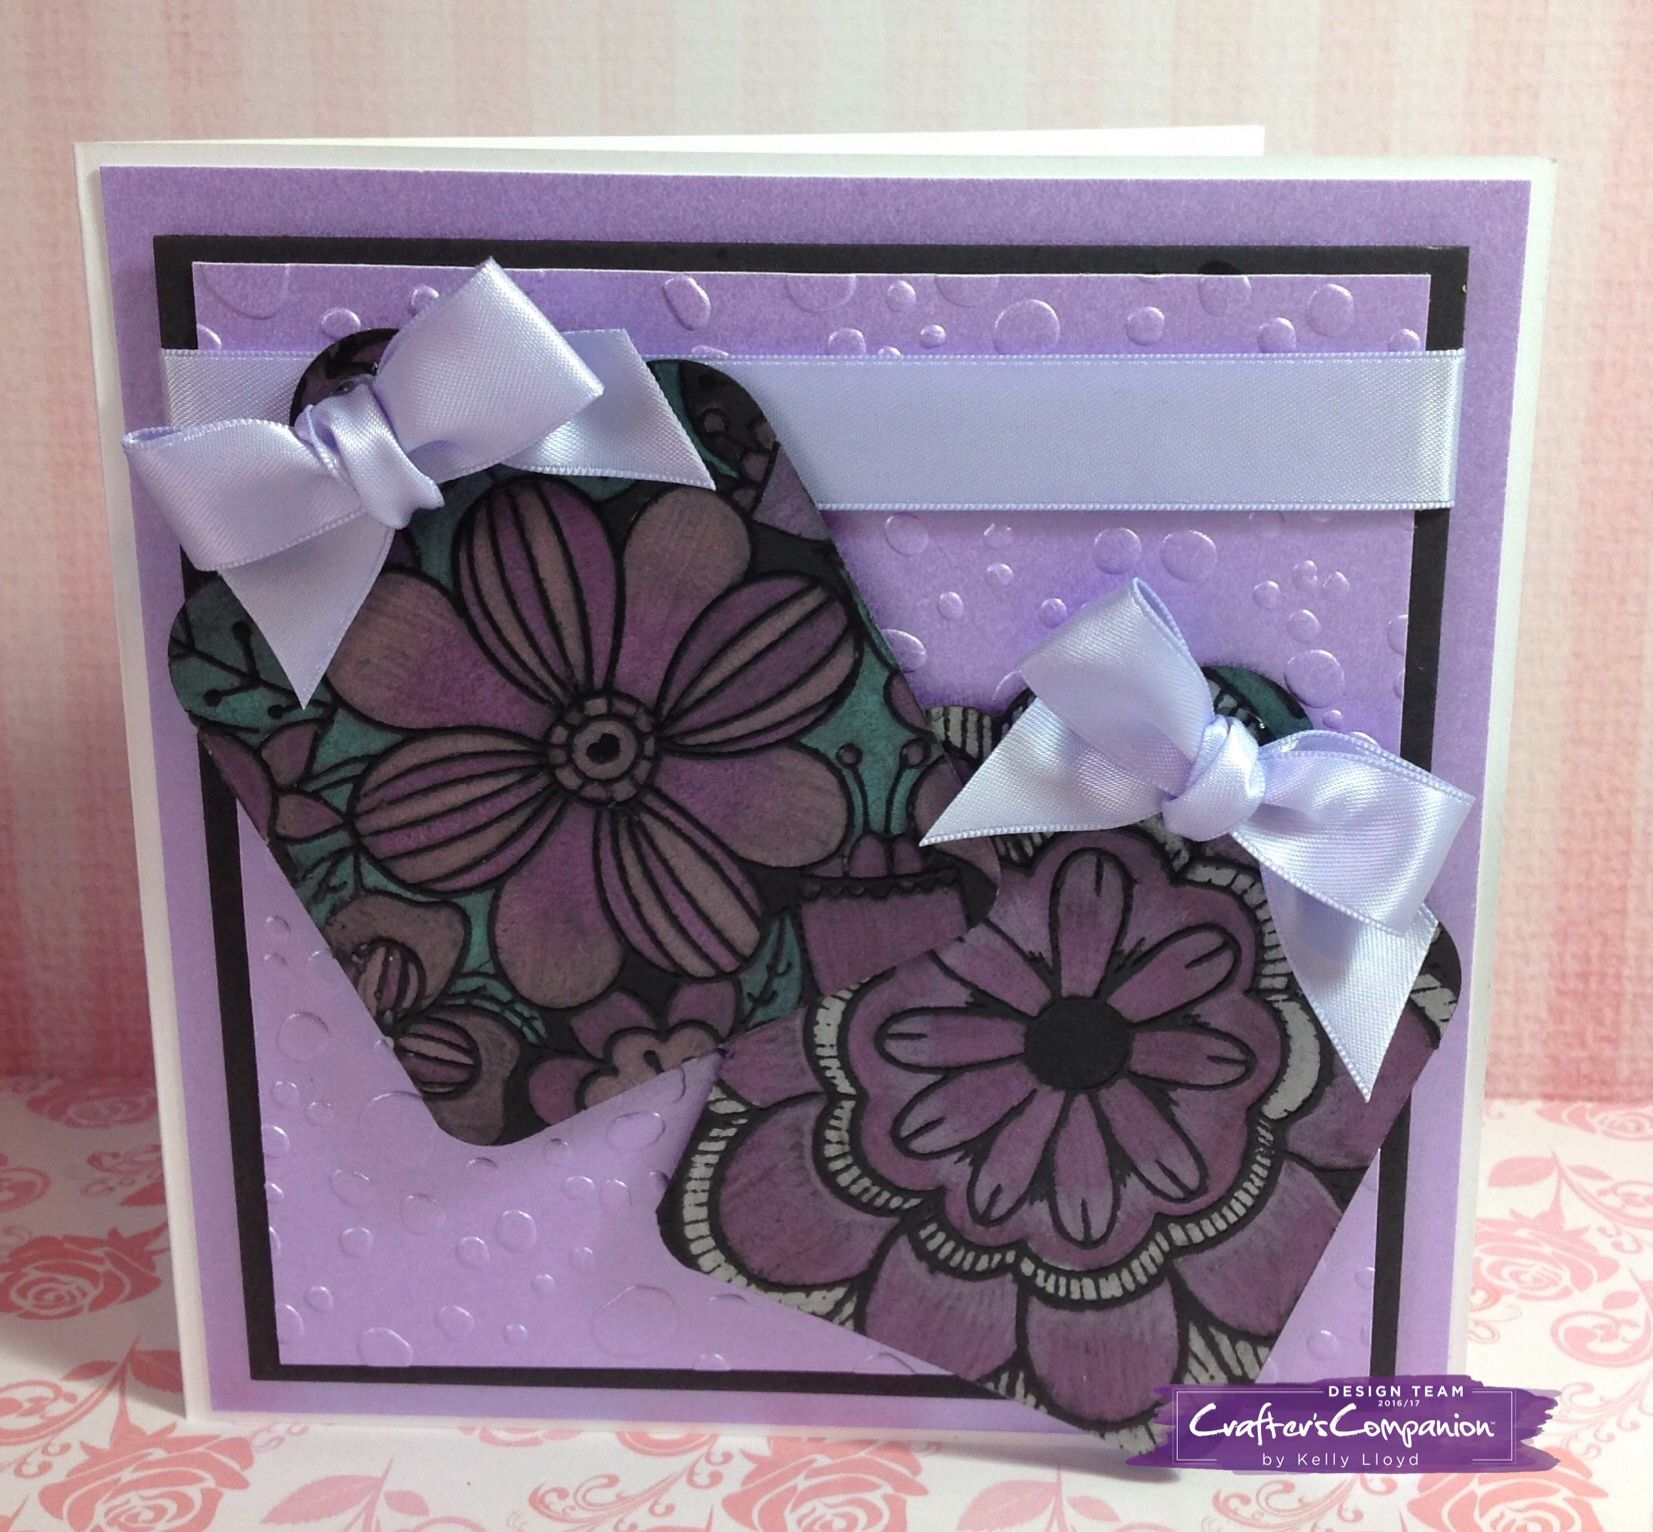 6x6 card using Spectrum Noir colorista dark designer tags 2 Coloured with spectrum noir metallic pencils. Purple, violet, pink, green, yellow. Designed by Kelly Lloyd #crafterscompanion #spectrumnoir #spectrumnoircolorista #adultcolouring